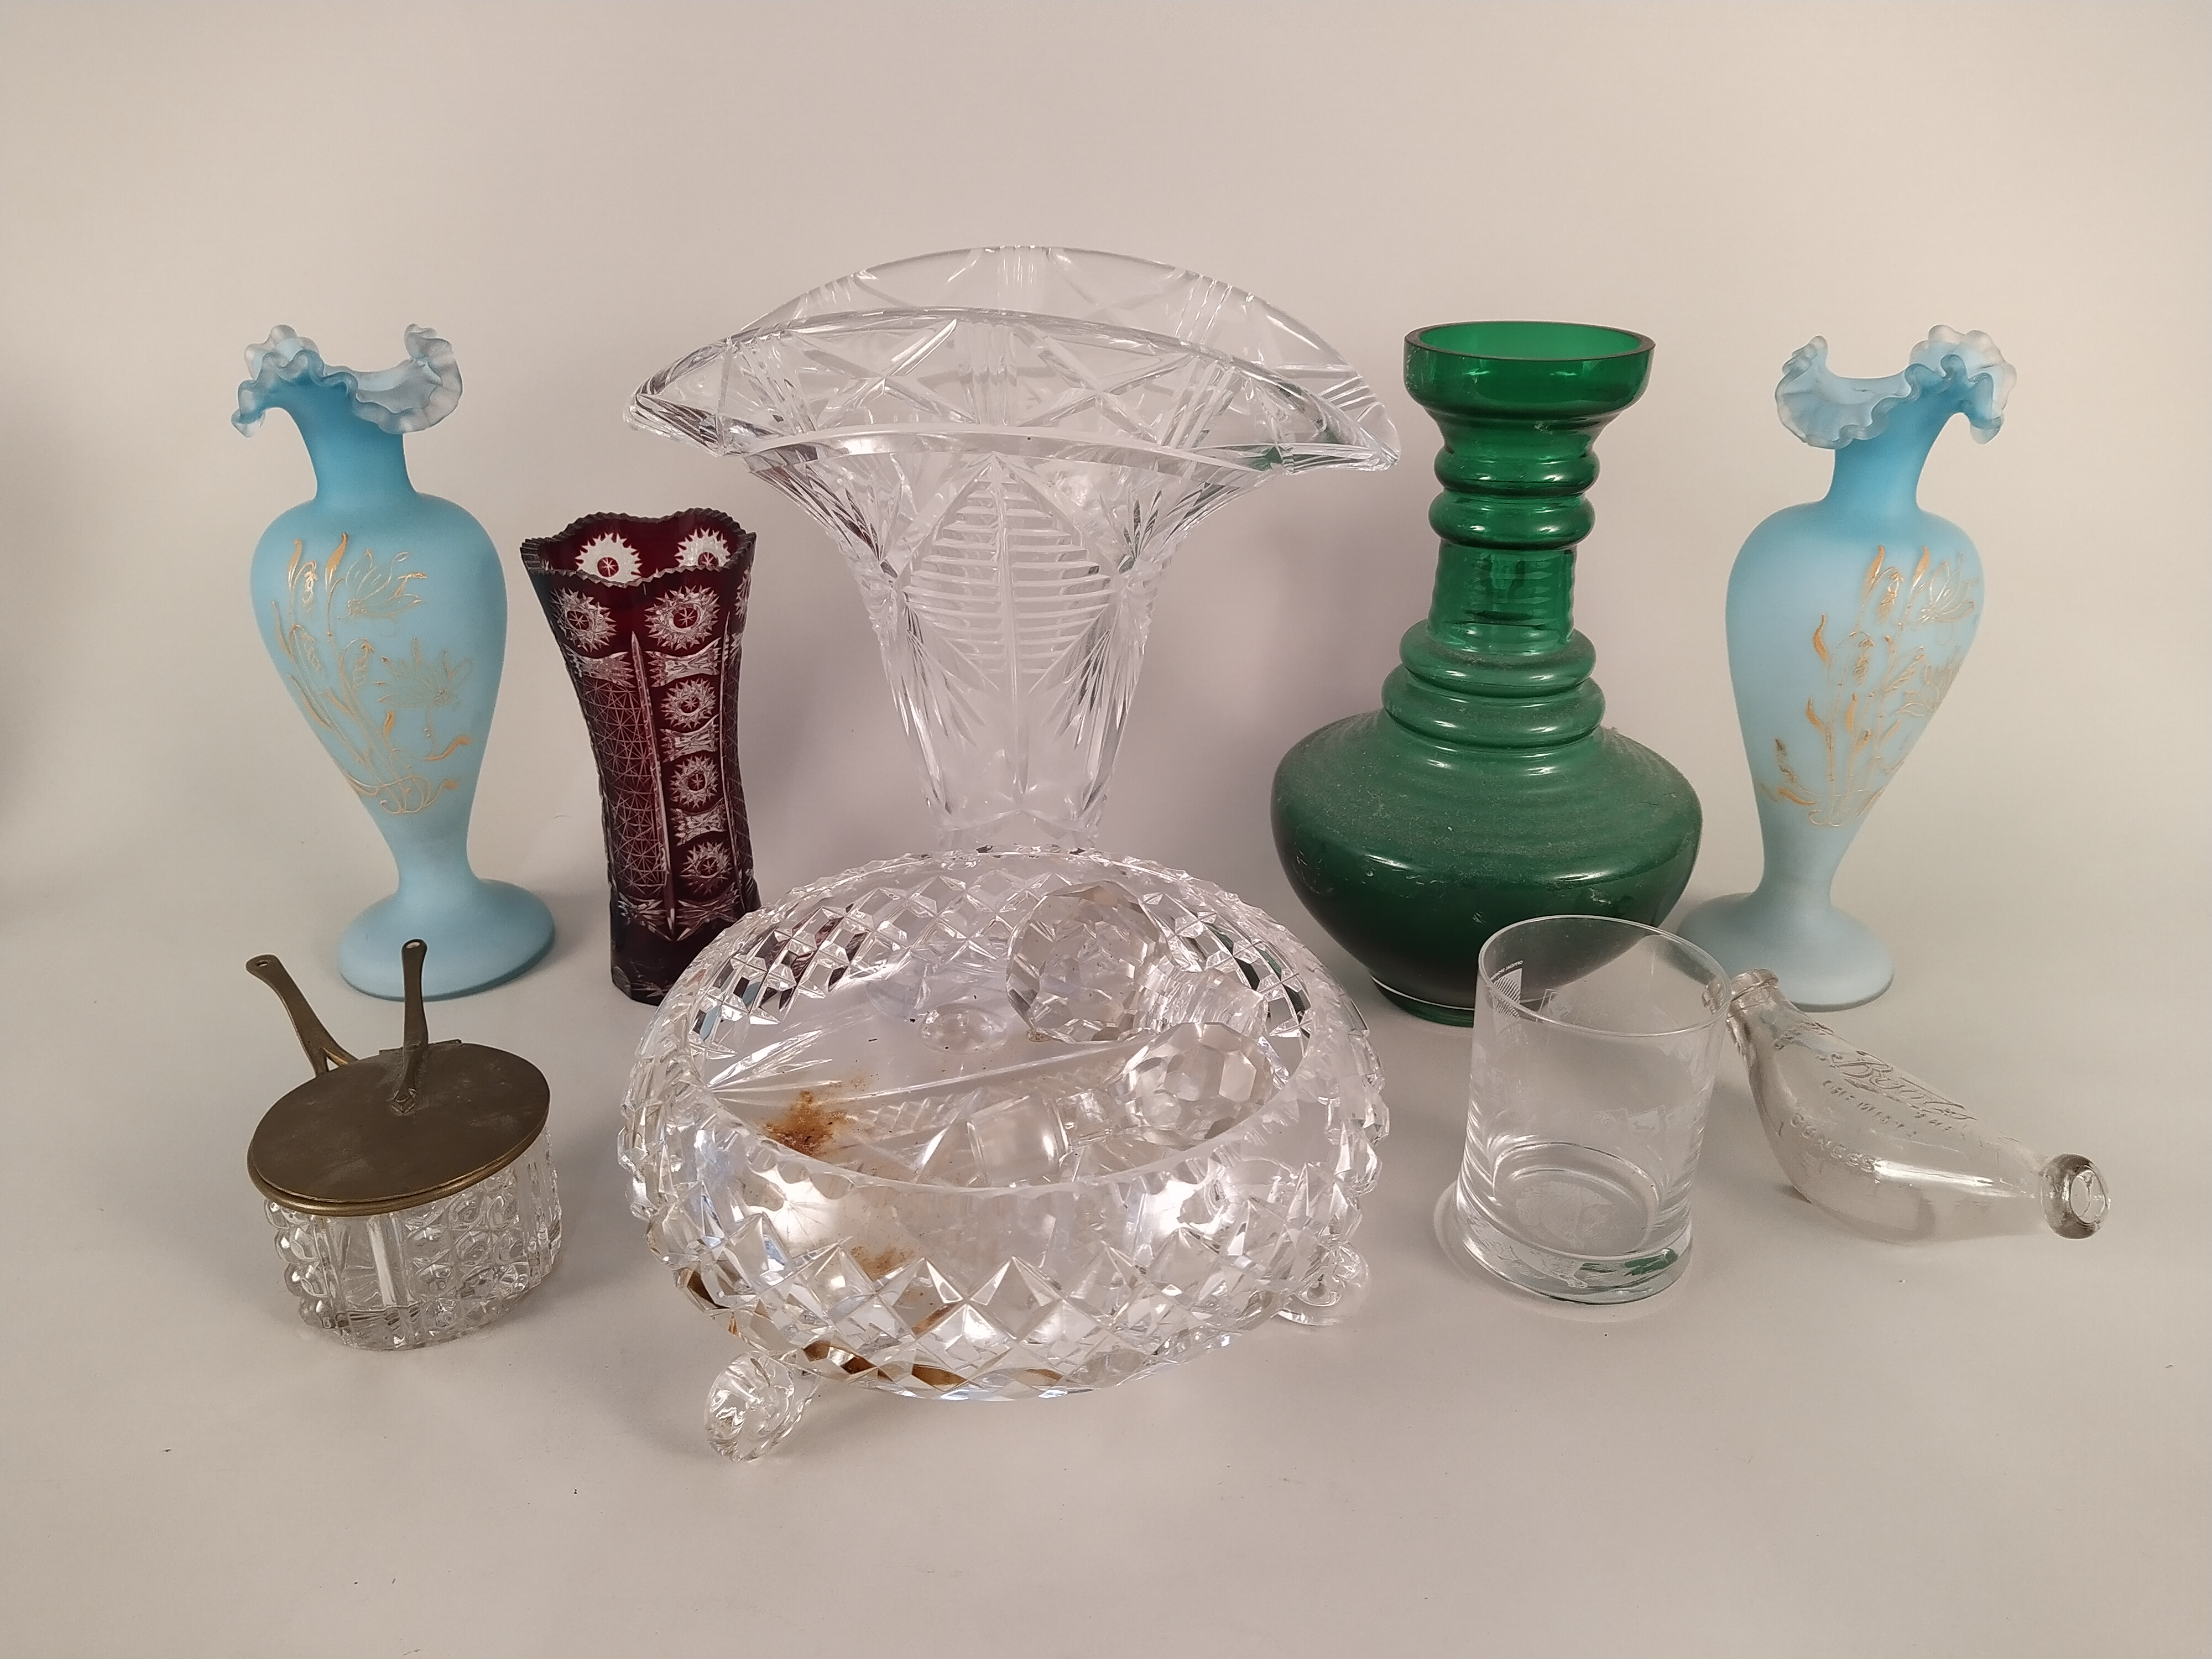 A selection of glassware including a large vase, coloured glass, - Image 2 of 3